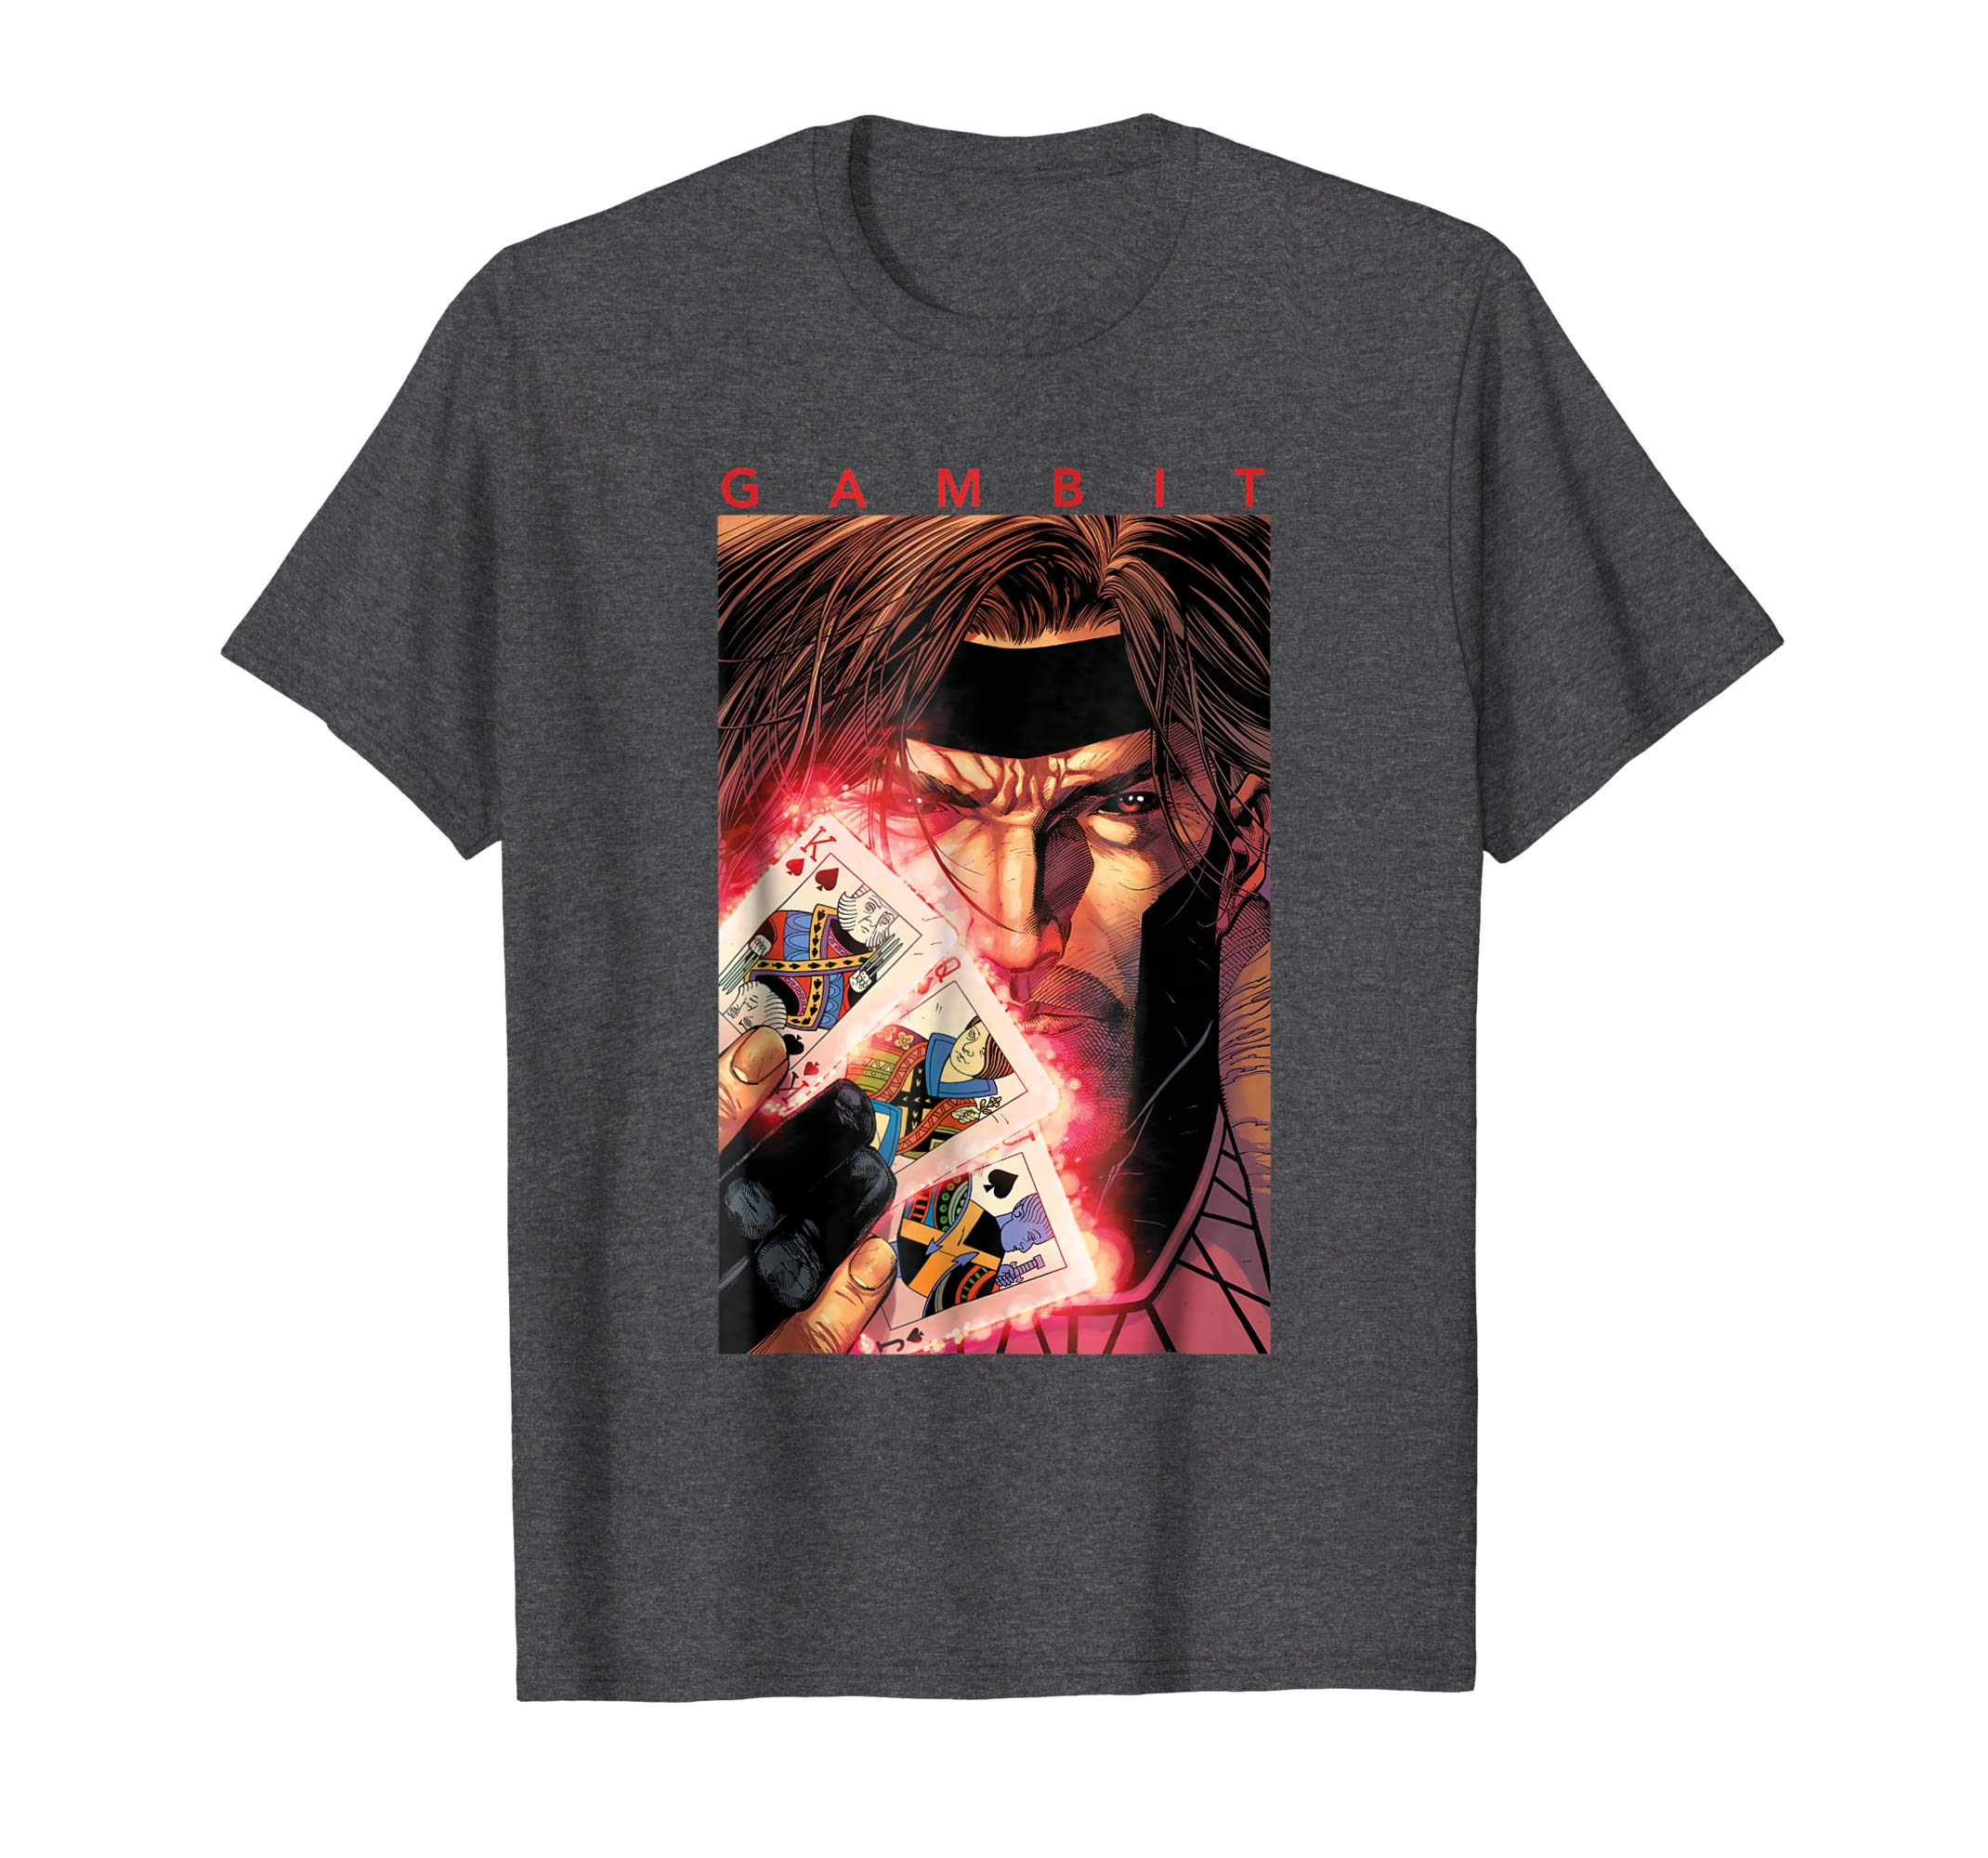 X Men Gambit Glowing Cards Graphic T Shirt-azvn